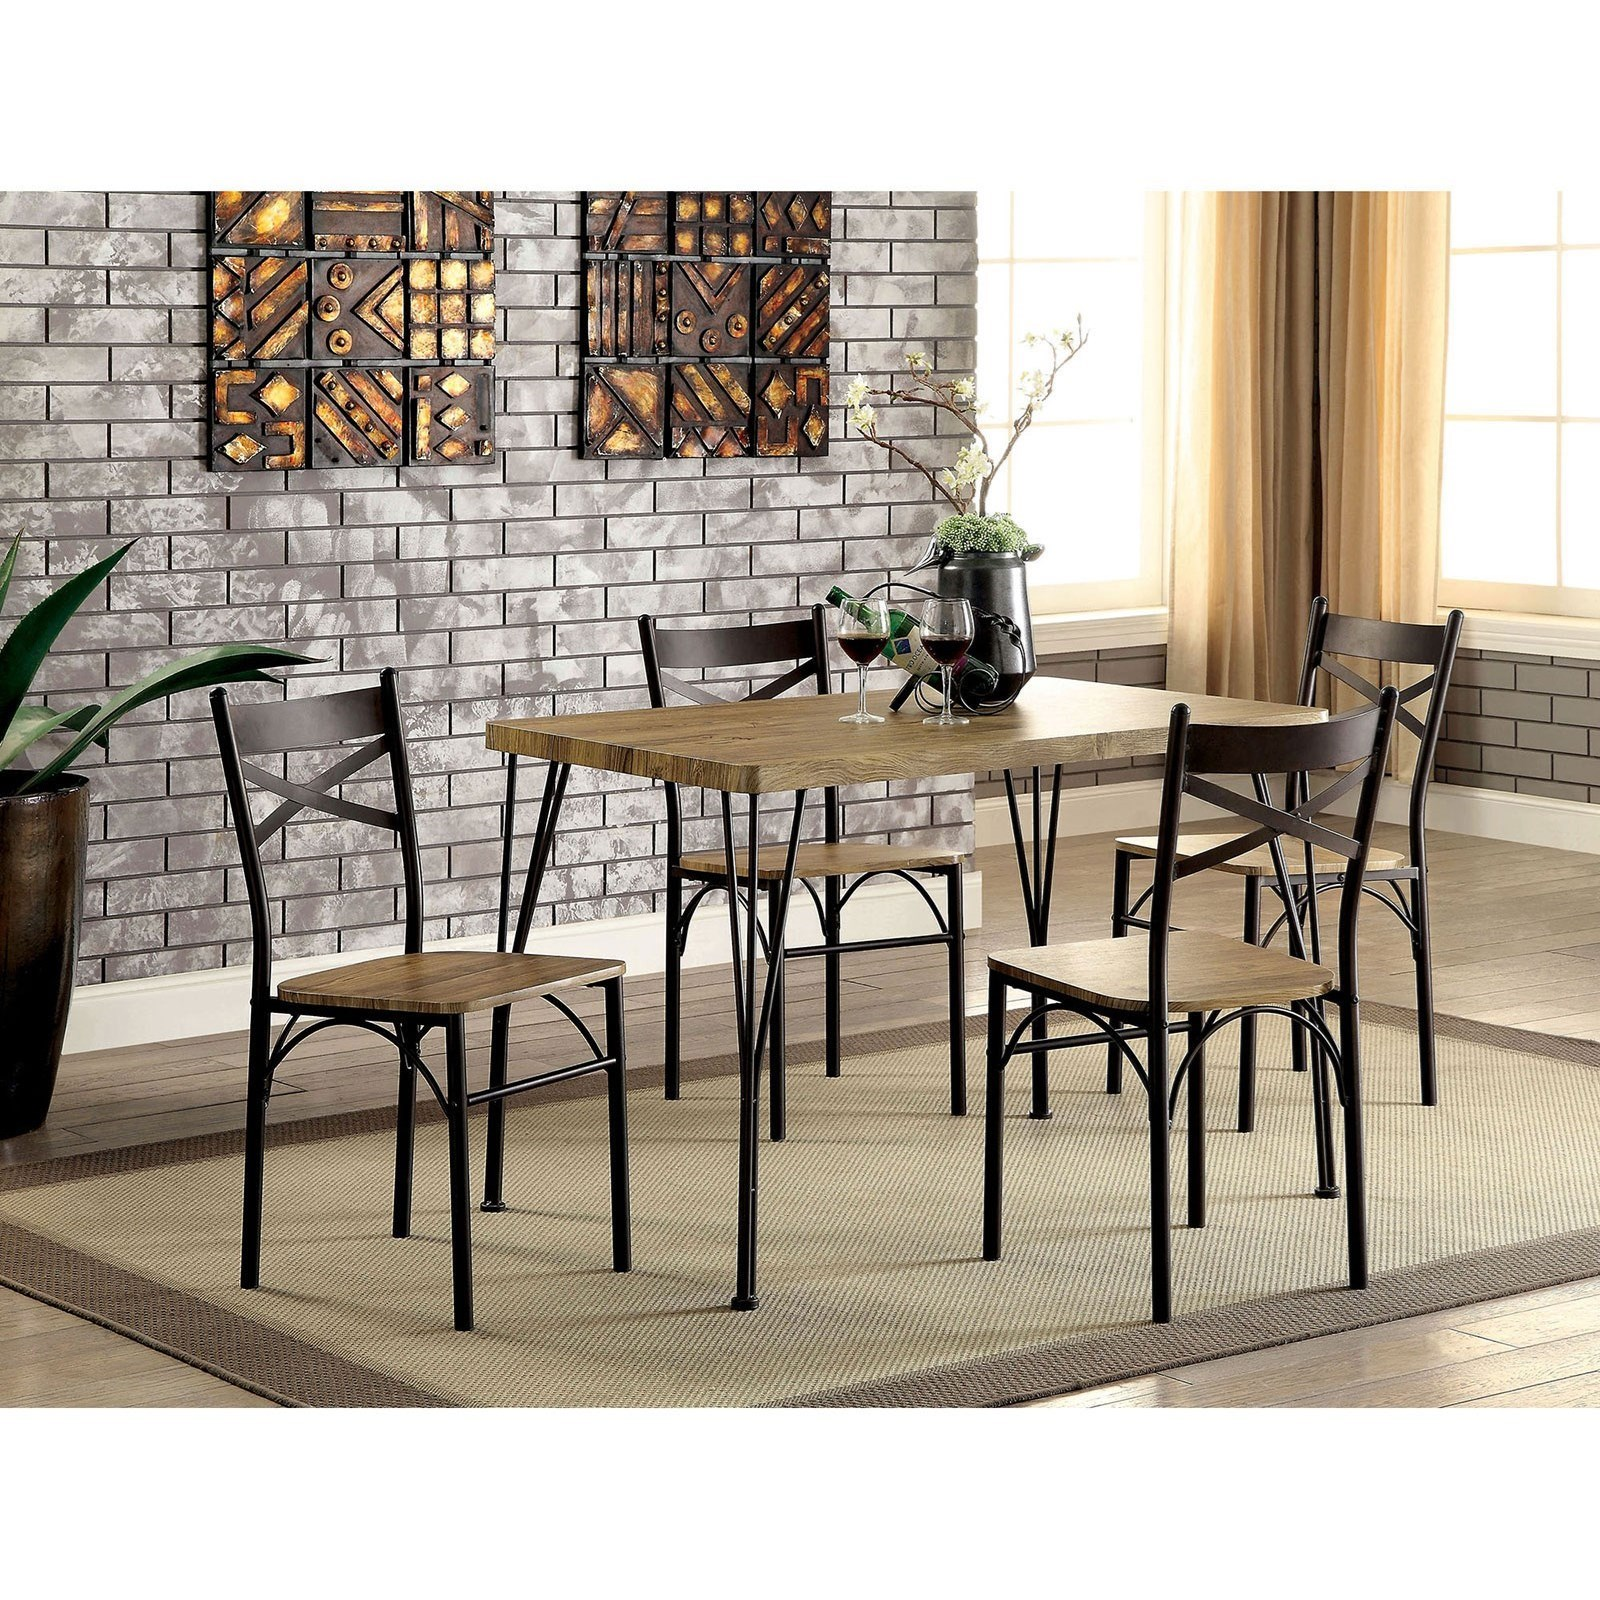 5 Pc. Dining Table Set